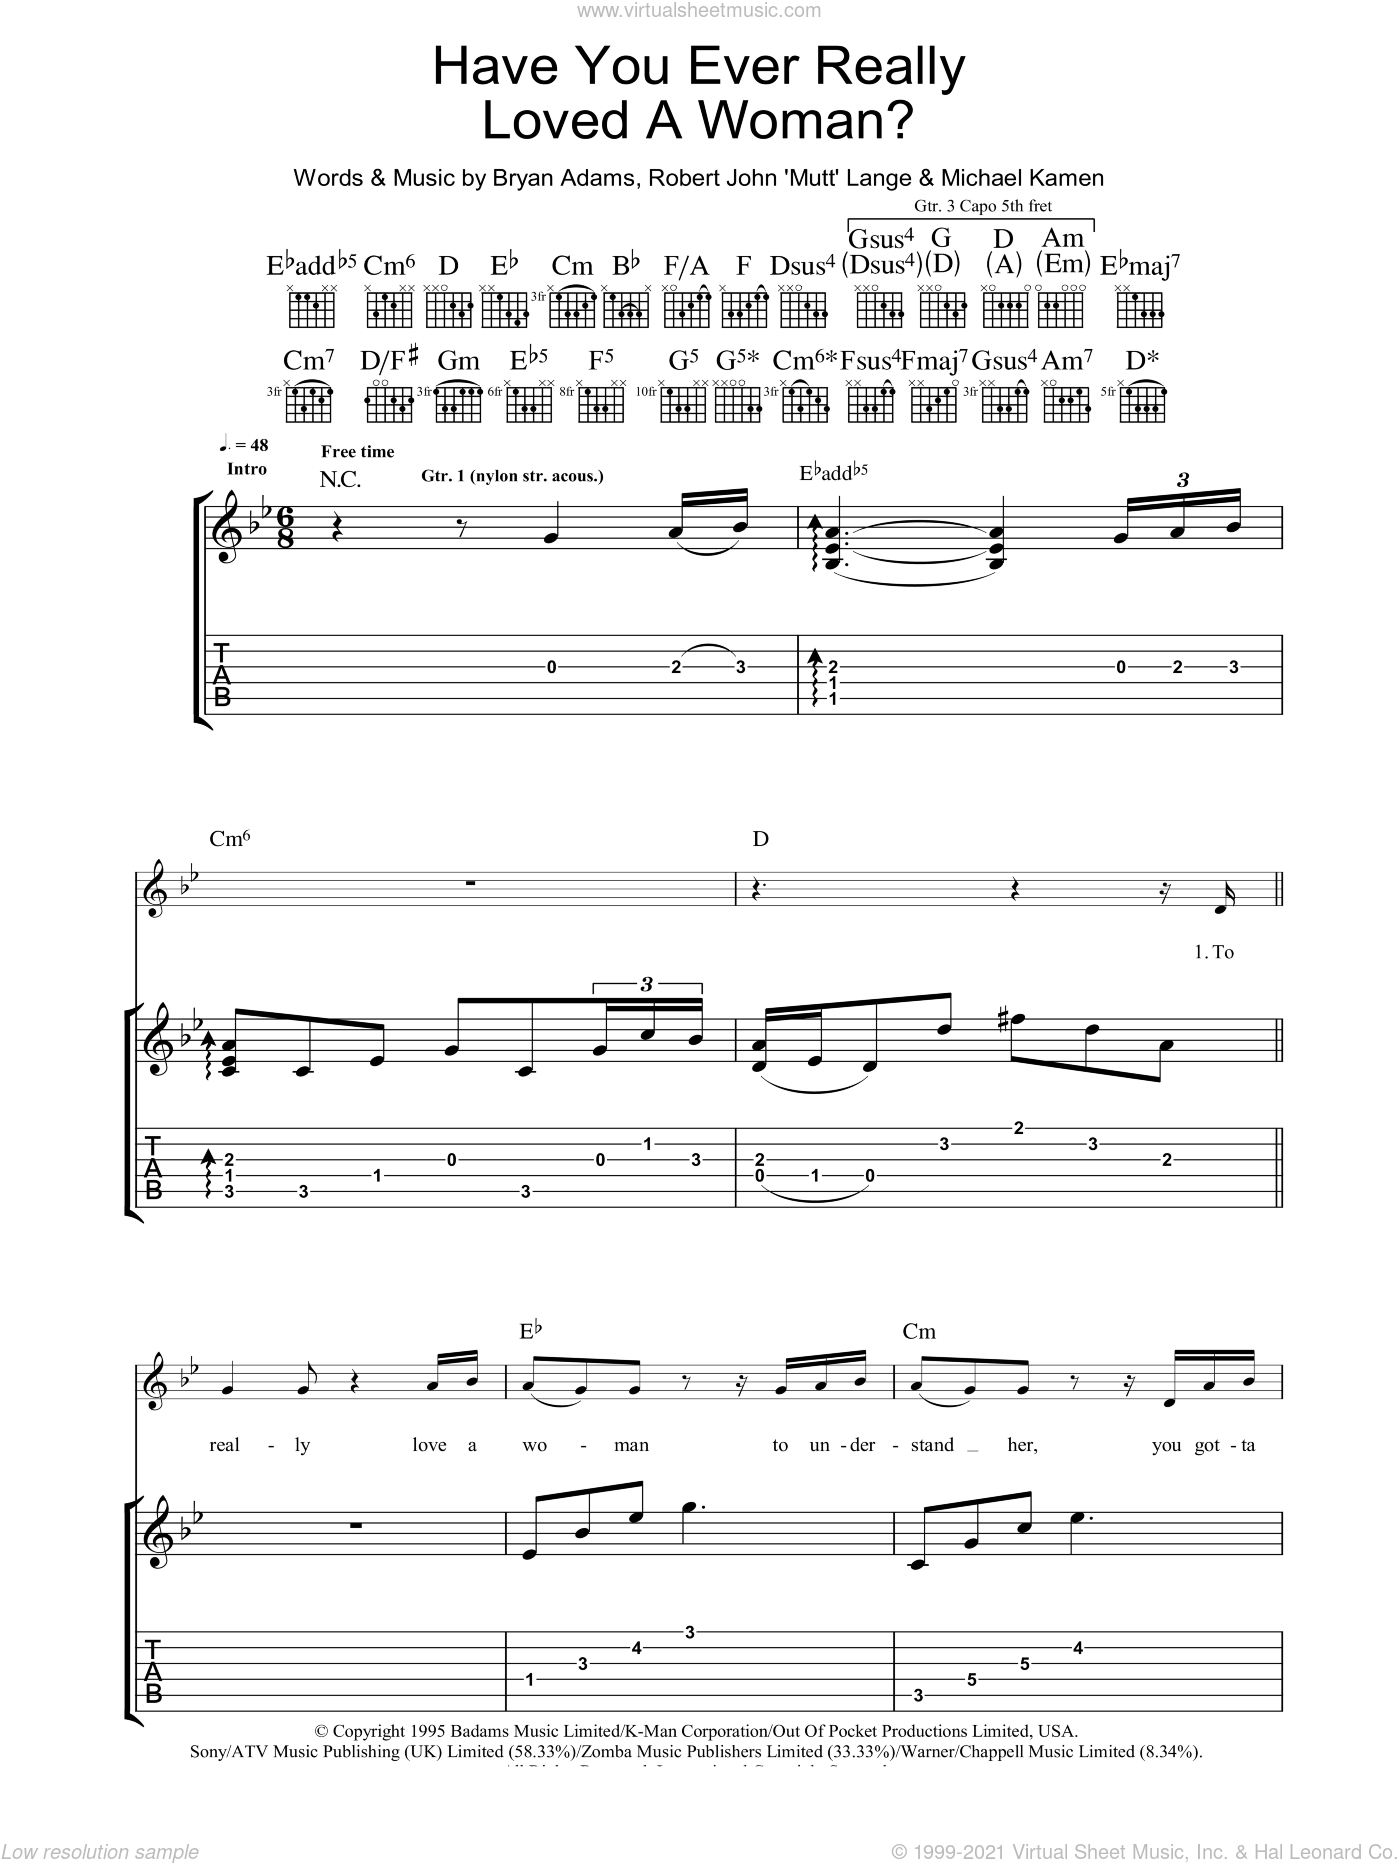 Have You Ever Really Loved A Woman? sheet music for guitar (tablature) by Robert John Lange